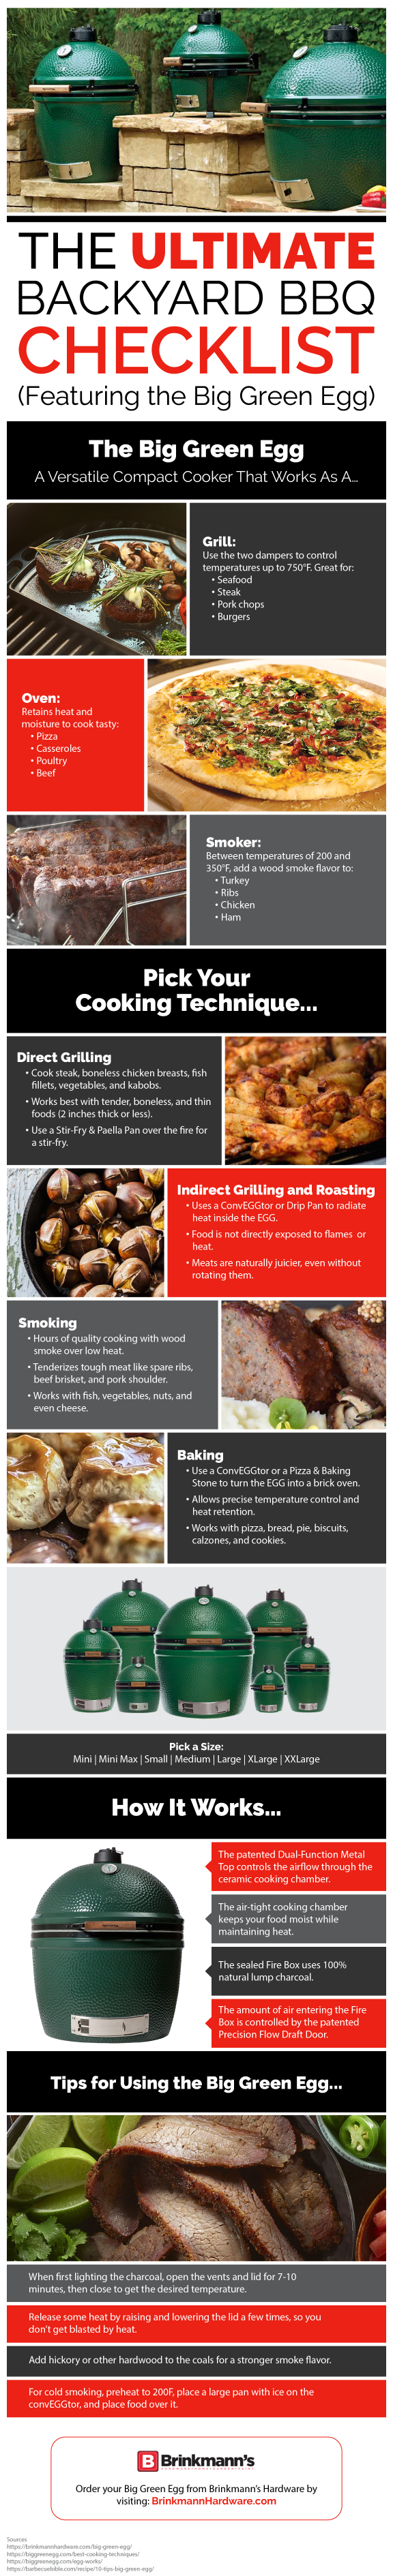 ultimate bbq checklist with the big green egg infographic